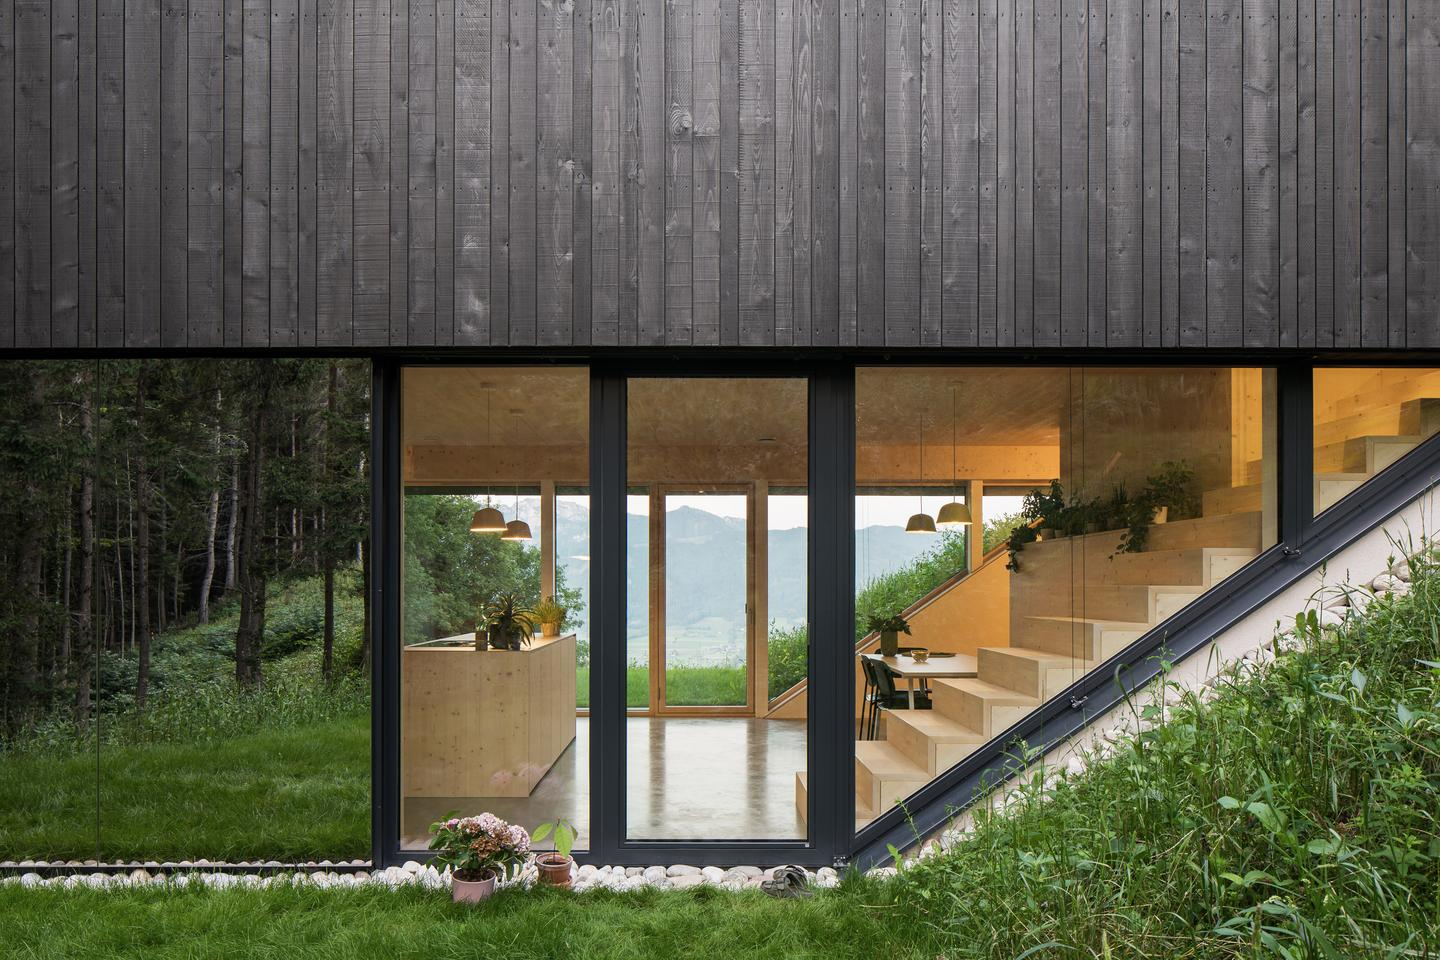 The Mountain House occupies a sloping plot of land in Upper Austria, with thick forest to one side and expansive valley views on the other